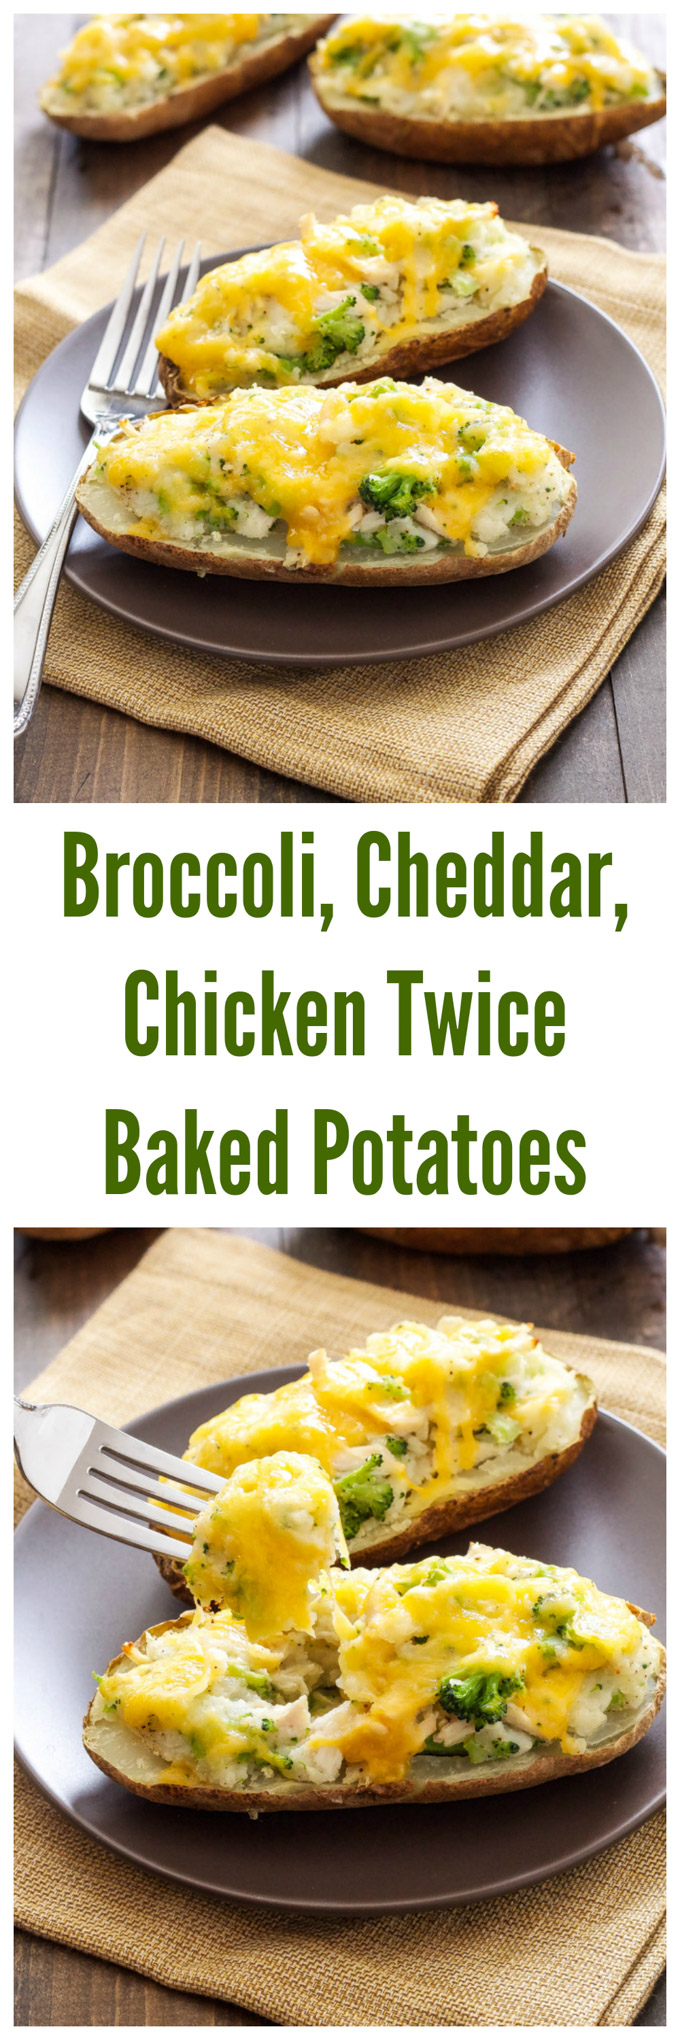 Broccoli, Cheddar, Chicken, Twice Baked Potatoes | A healthy and easy dinner the whole family will love! | @reciperunner